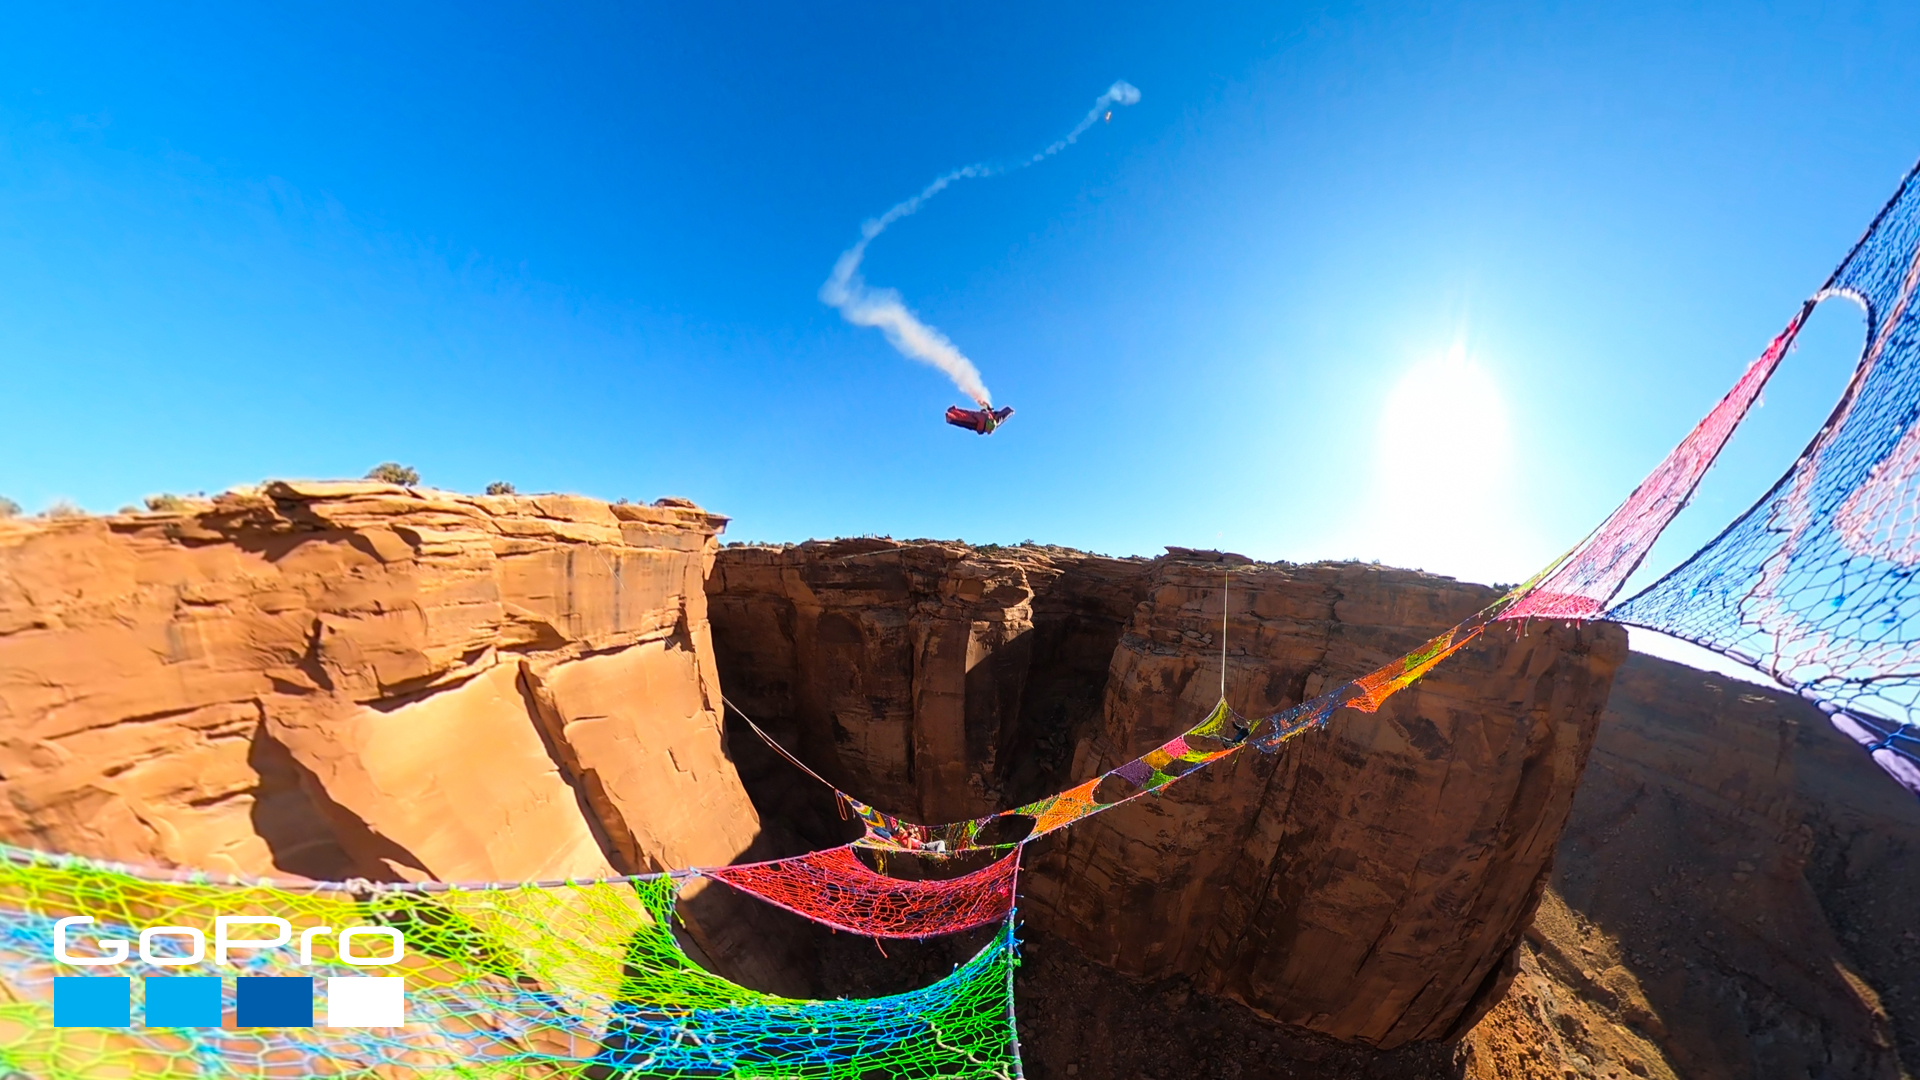 Wingsuiter-Flies-Through-Narrow-Hole